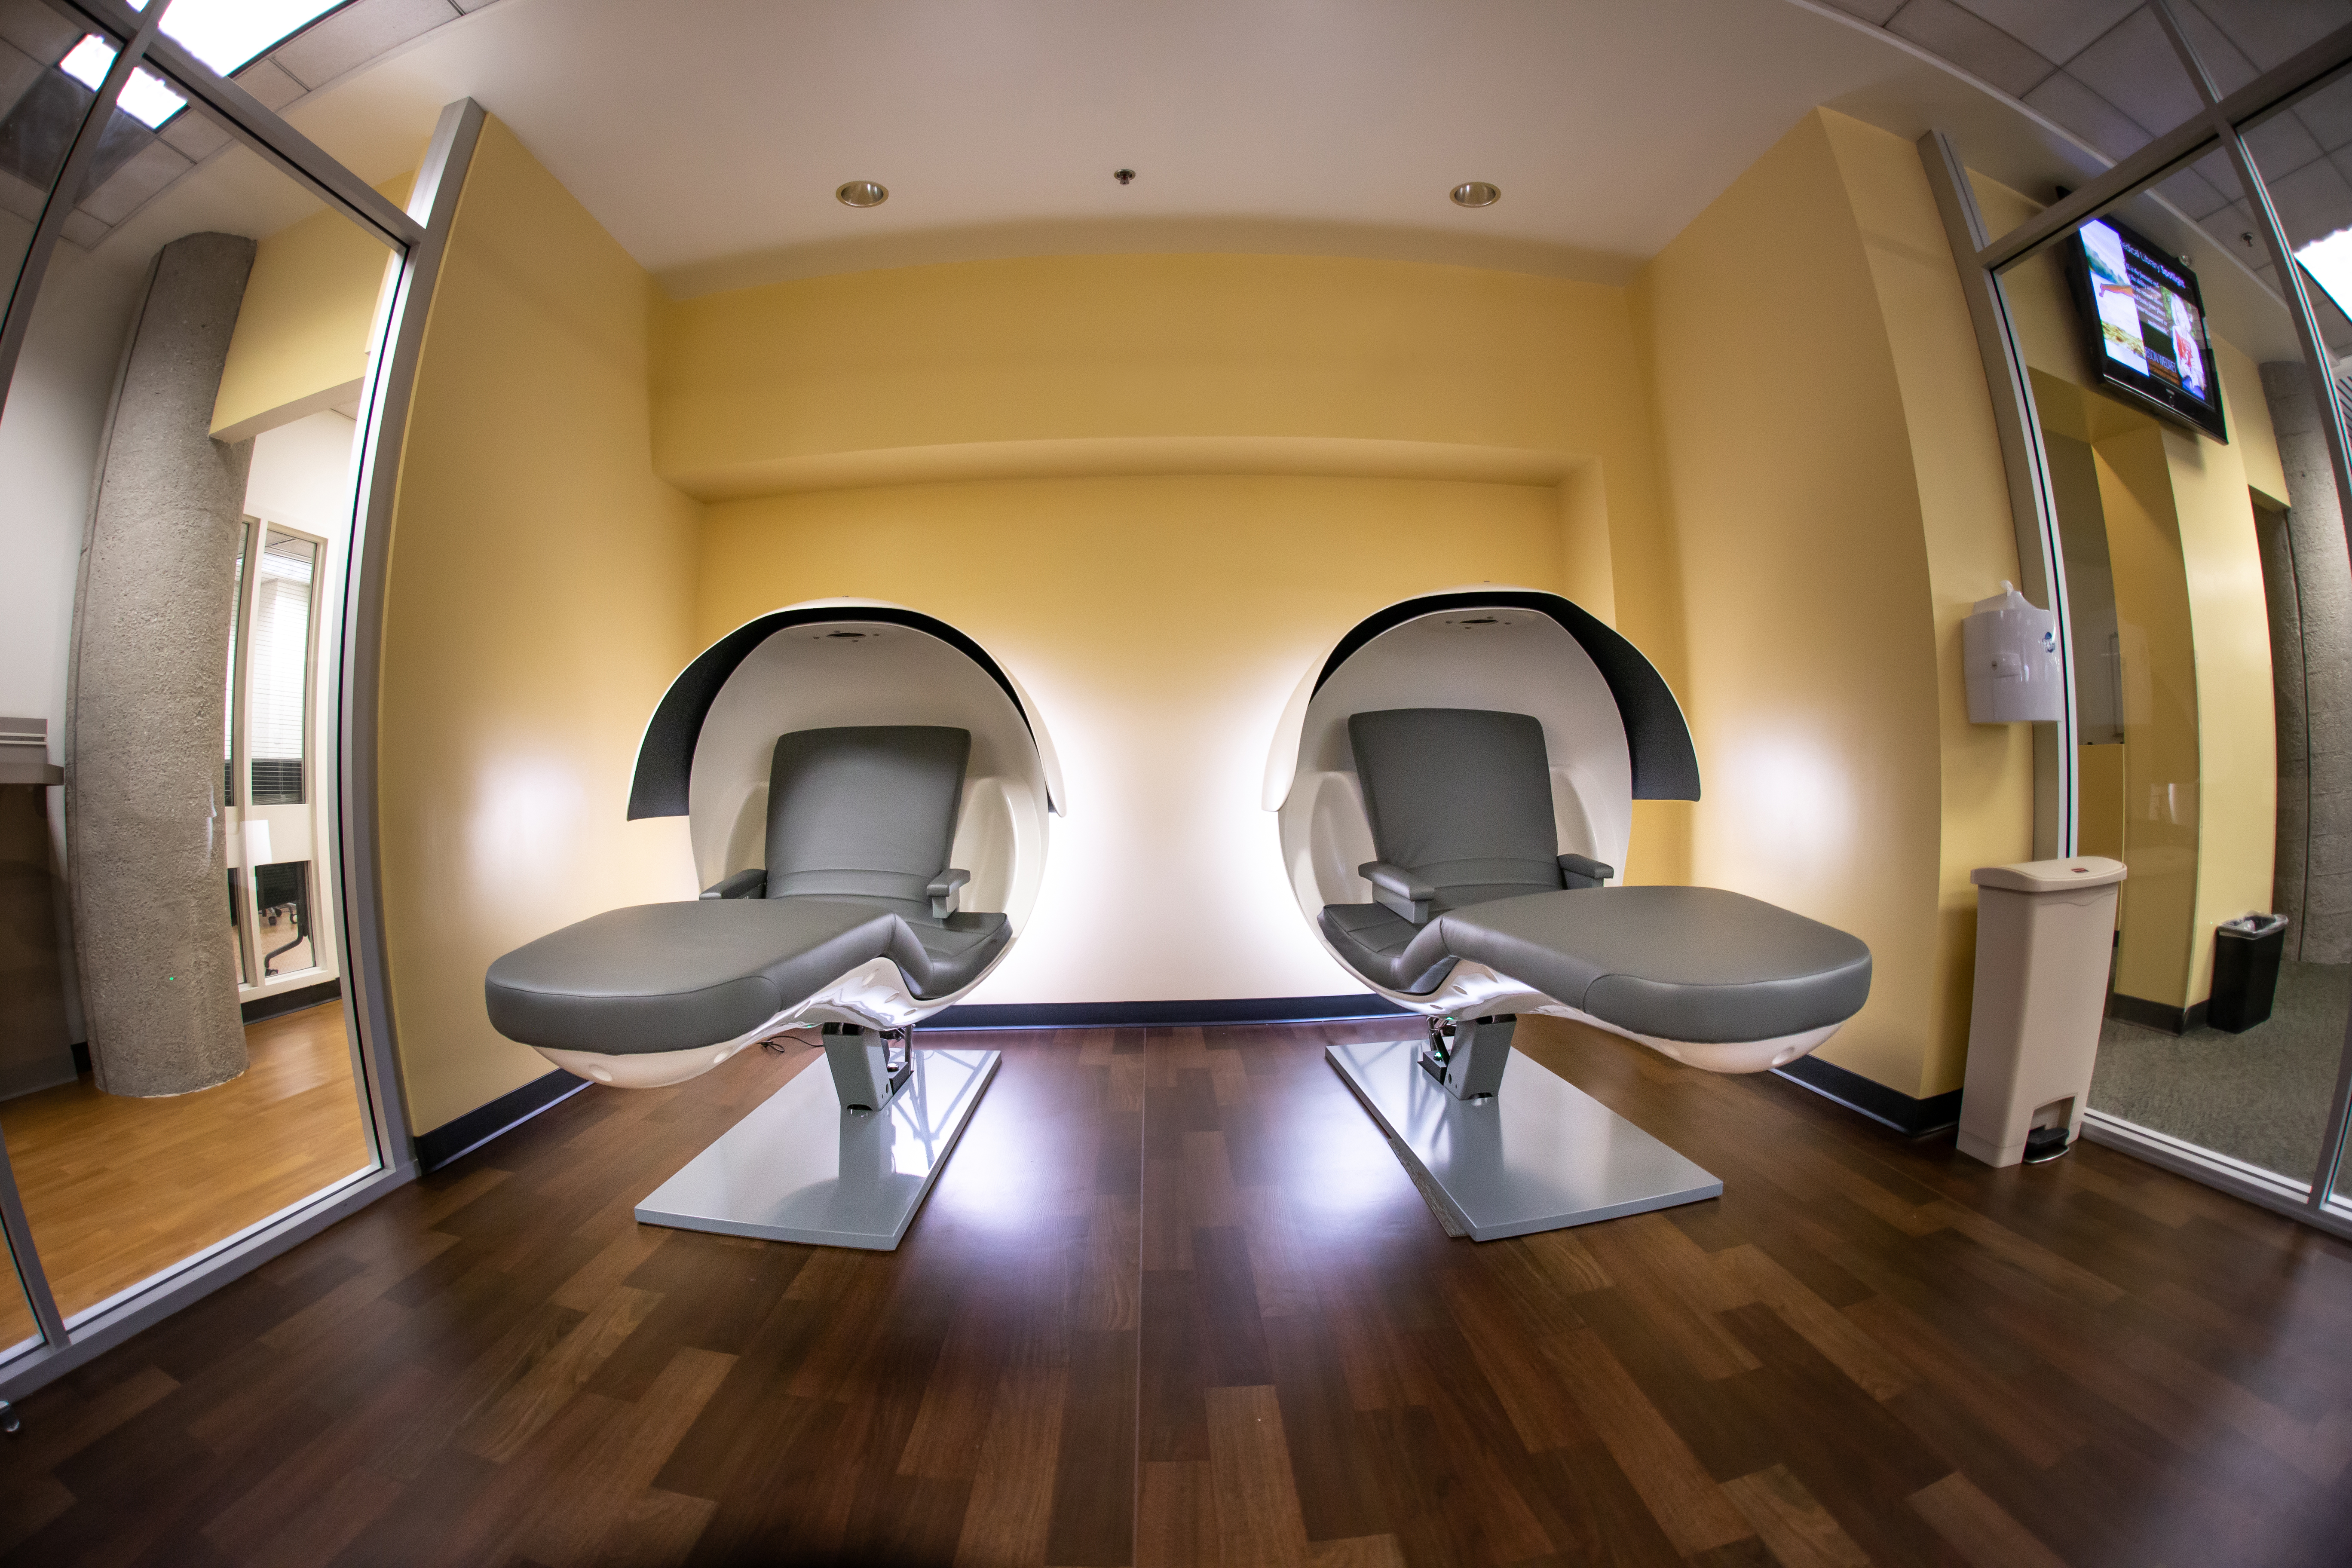 Sleep pods at the 24/7 Research Lounge at the Grunigen Medical Library